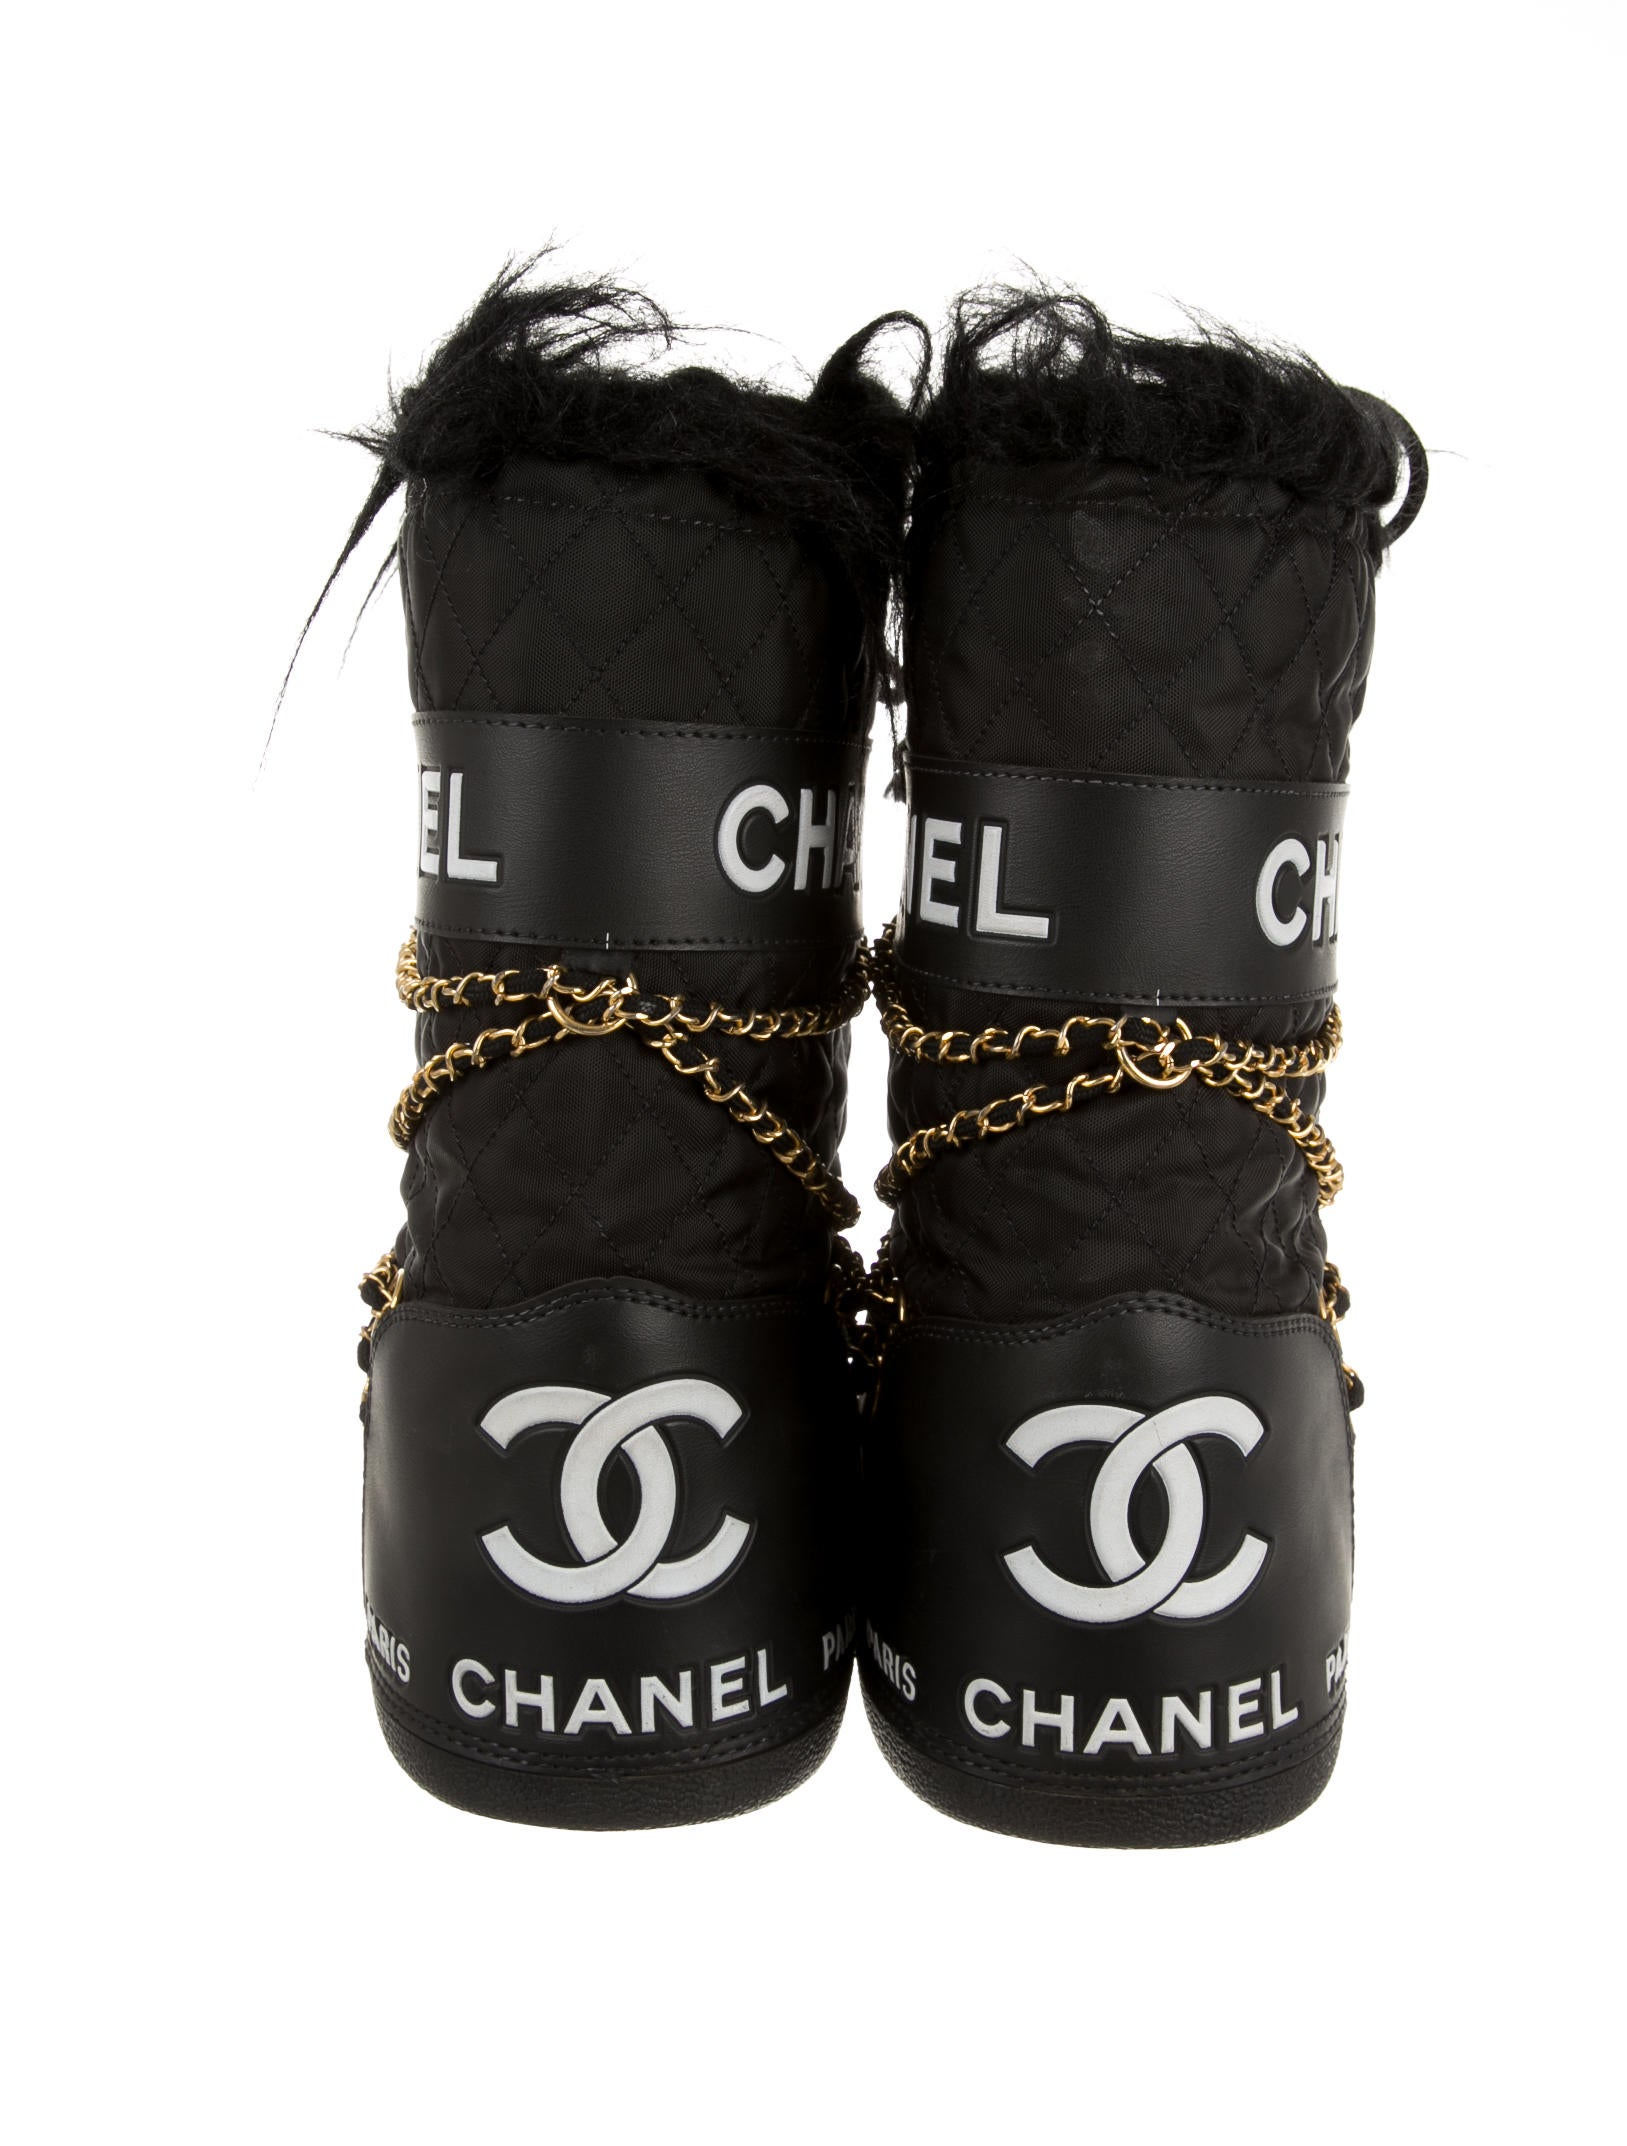 Chanel Moon Boots Shoes Cha71532 The Realreal